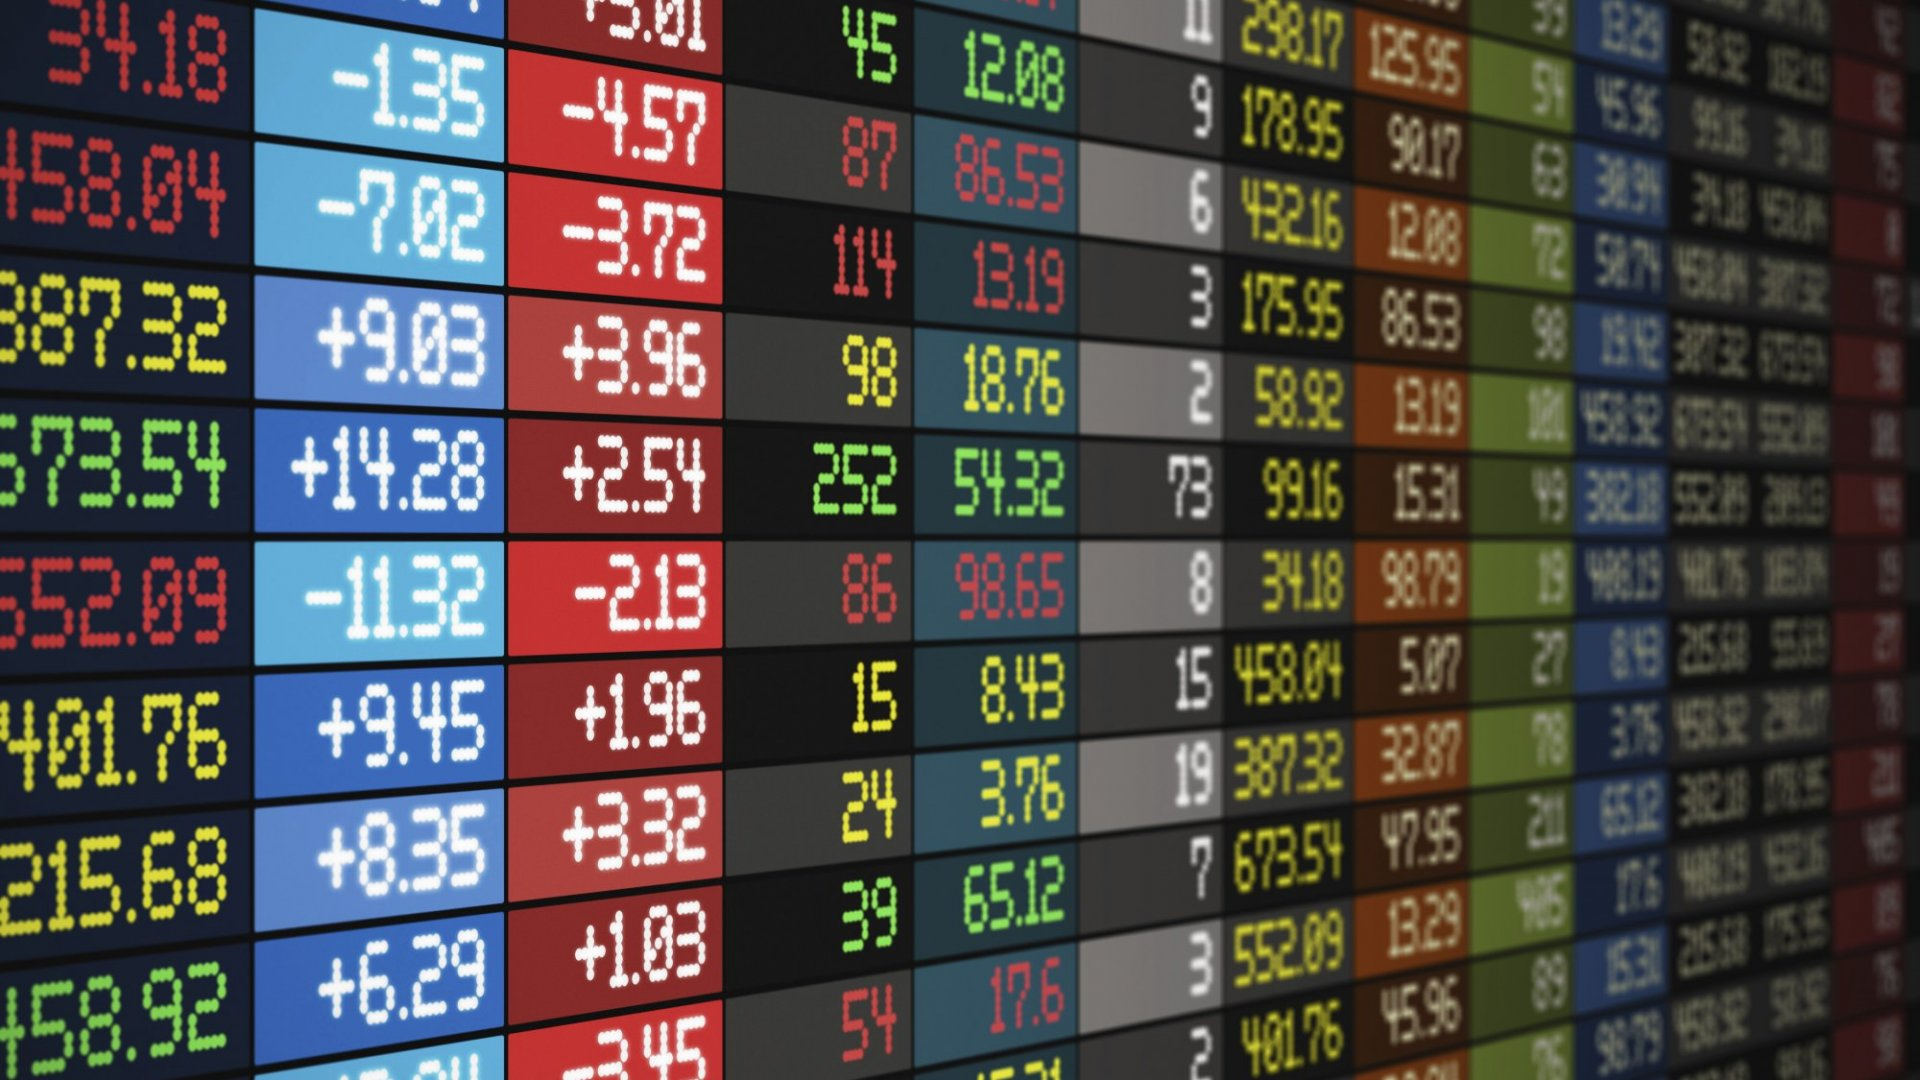 IPOs Take a Breather in Q1, But the Year Is Young